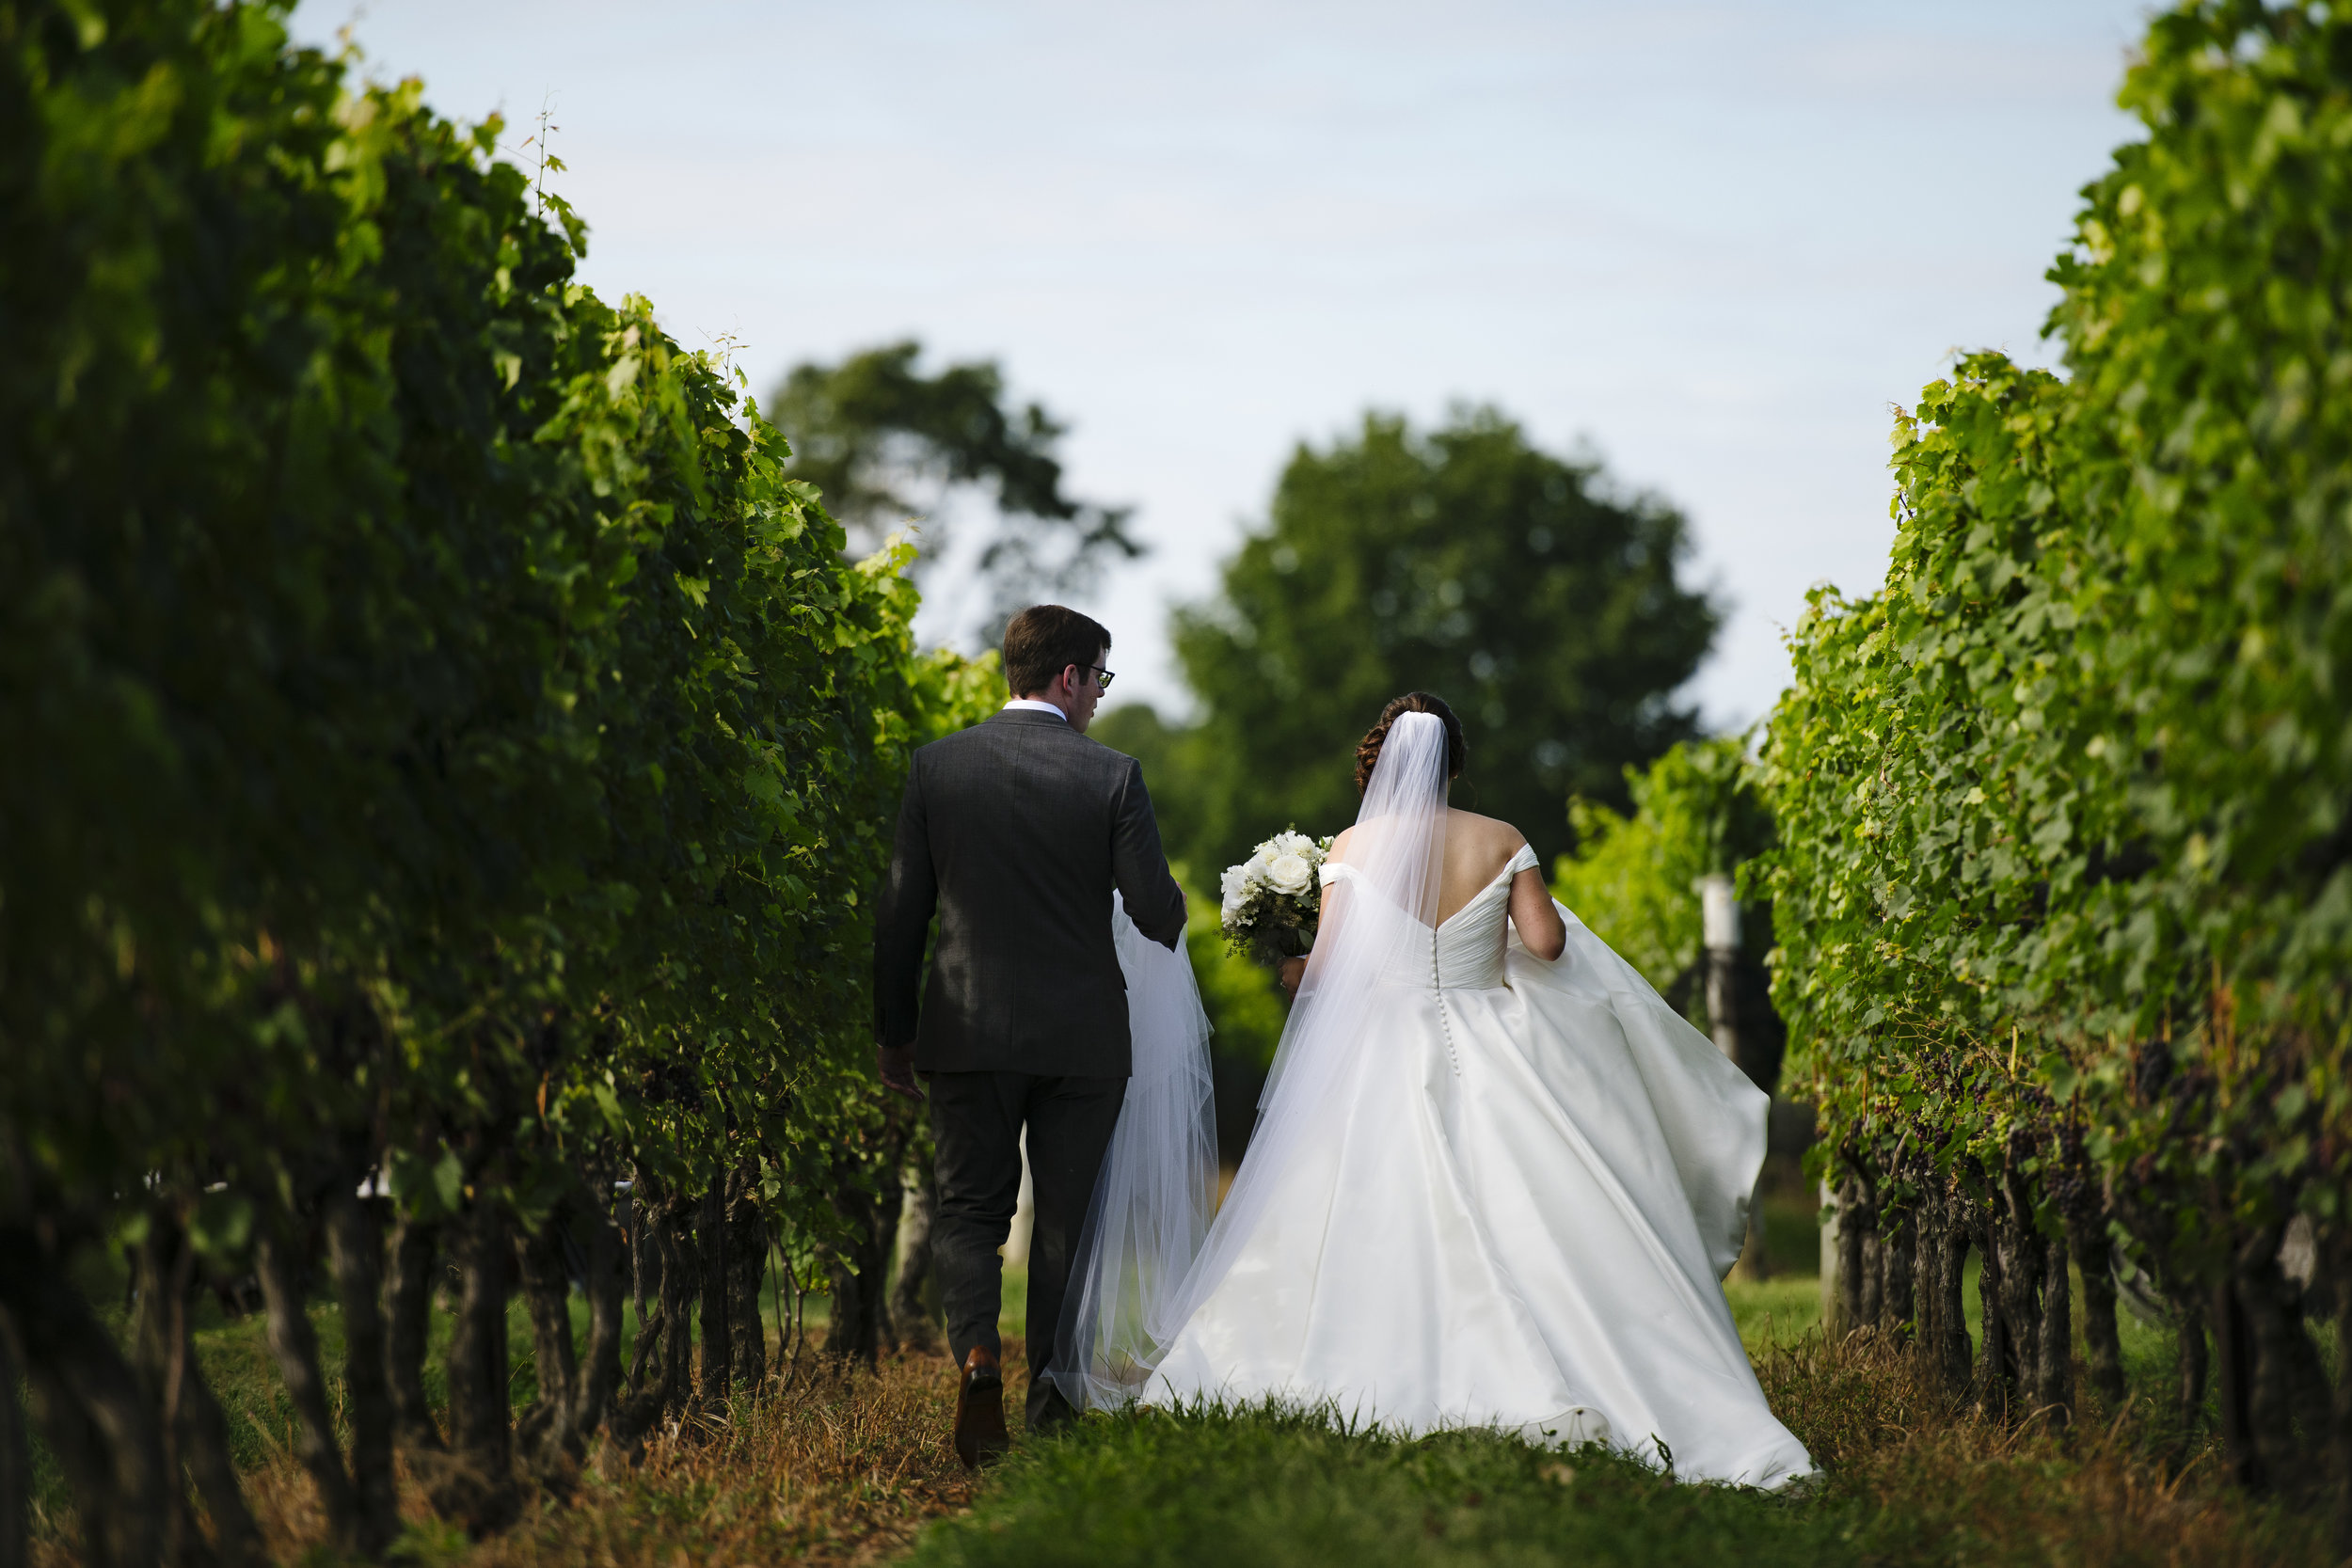 Bride and groom first look in the vineyard at Jonathan Edwards Winery in Connecticut - Pearl Weddings & Events